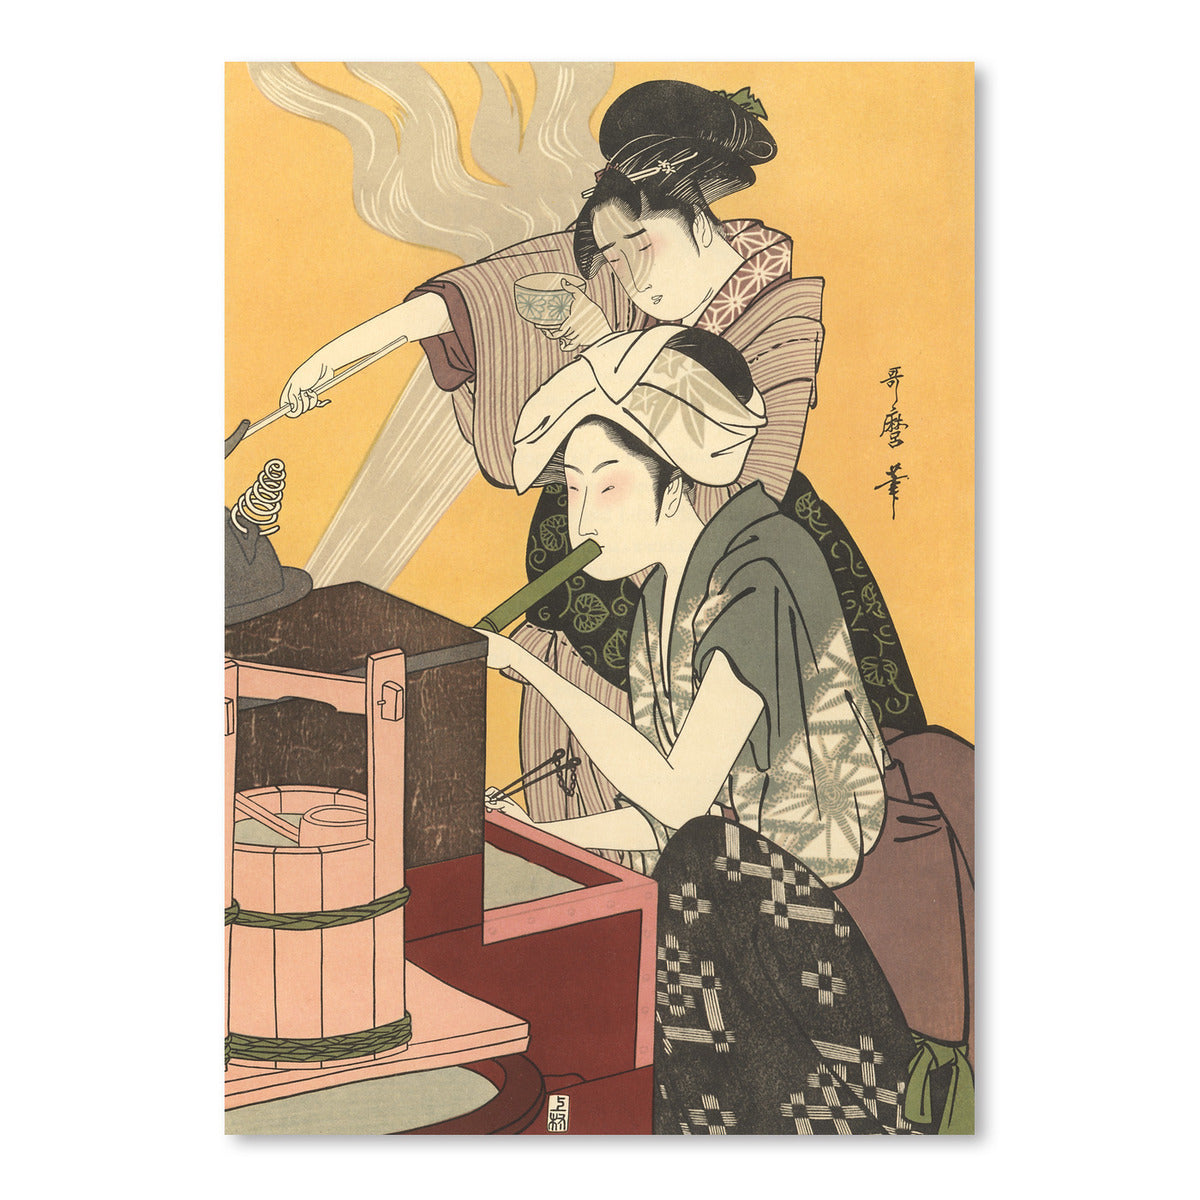 Japanese Women Cooking by Found Image Press Art Print - Art Print - Americanflat